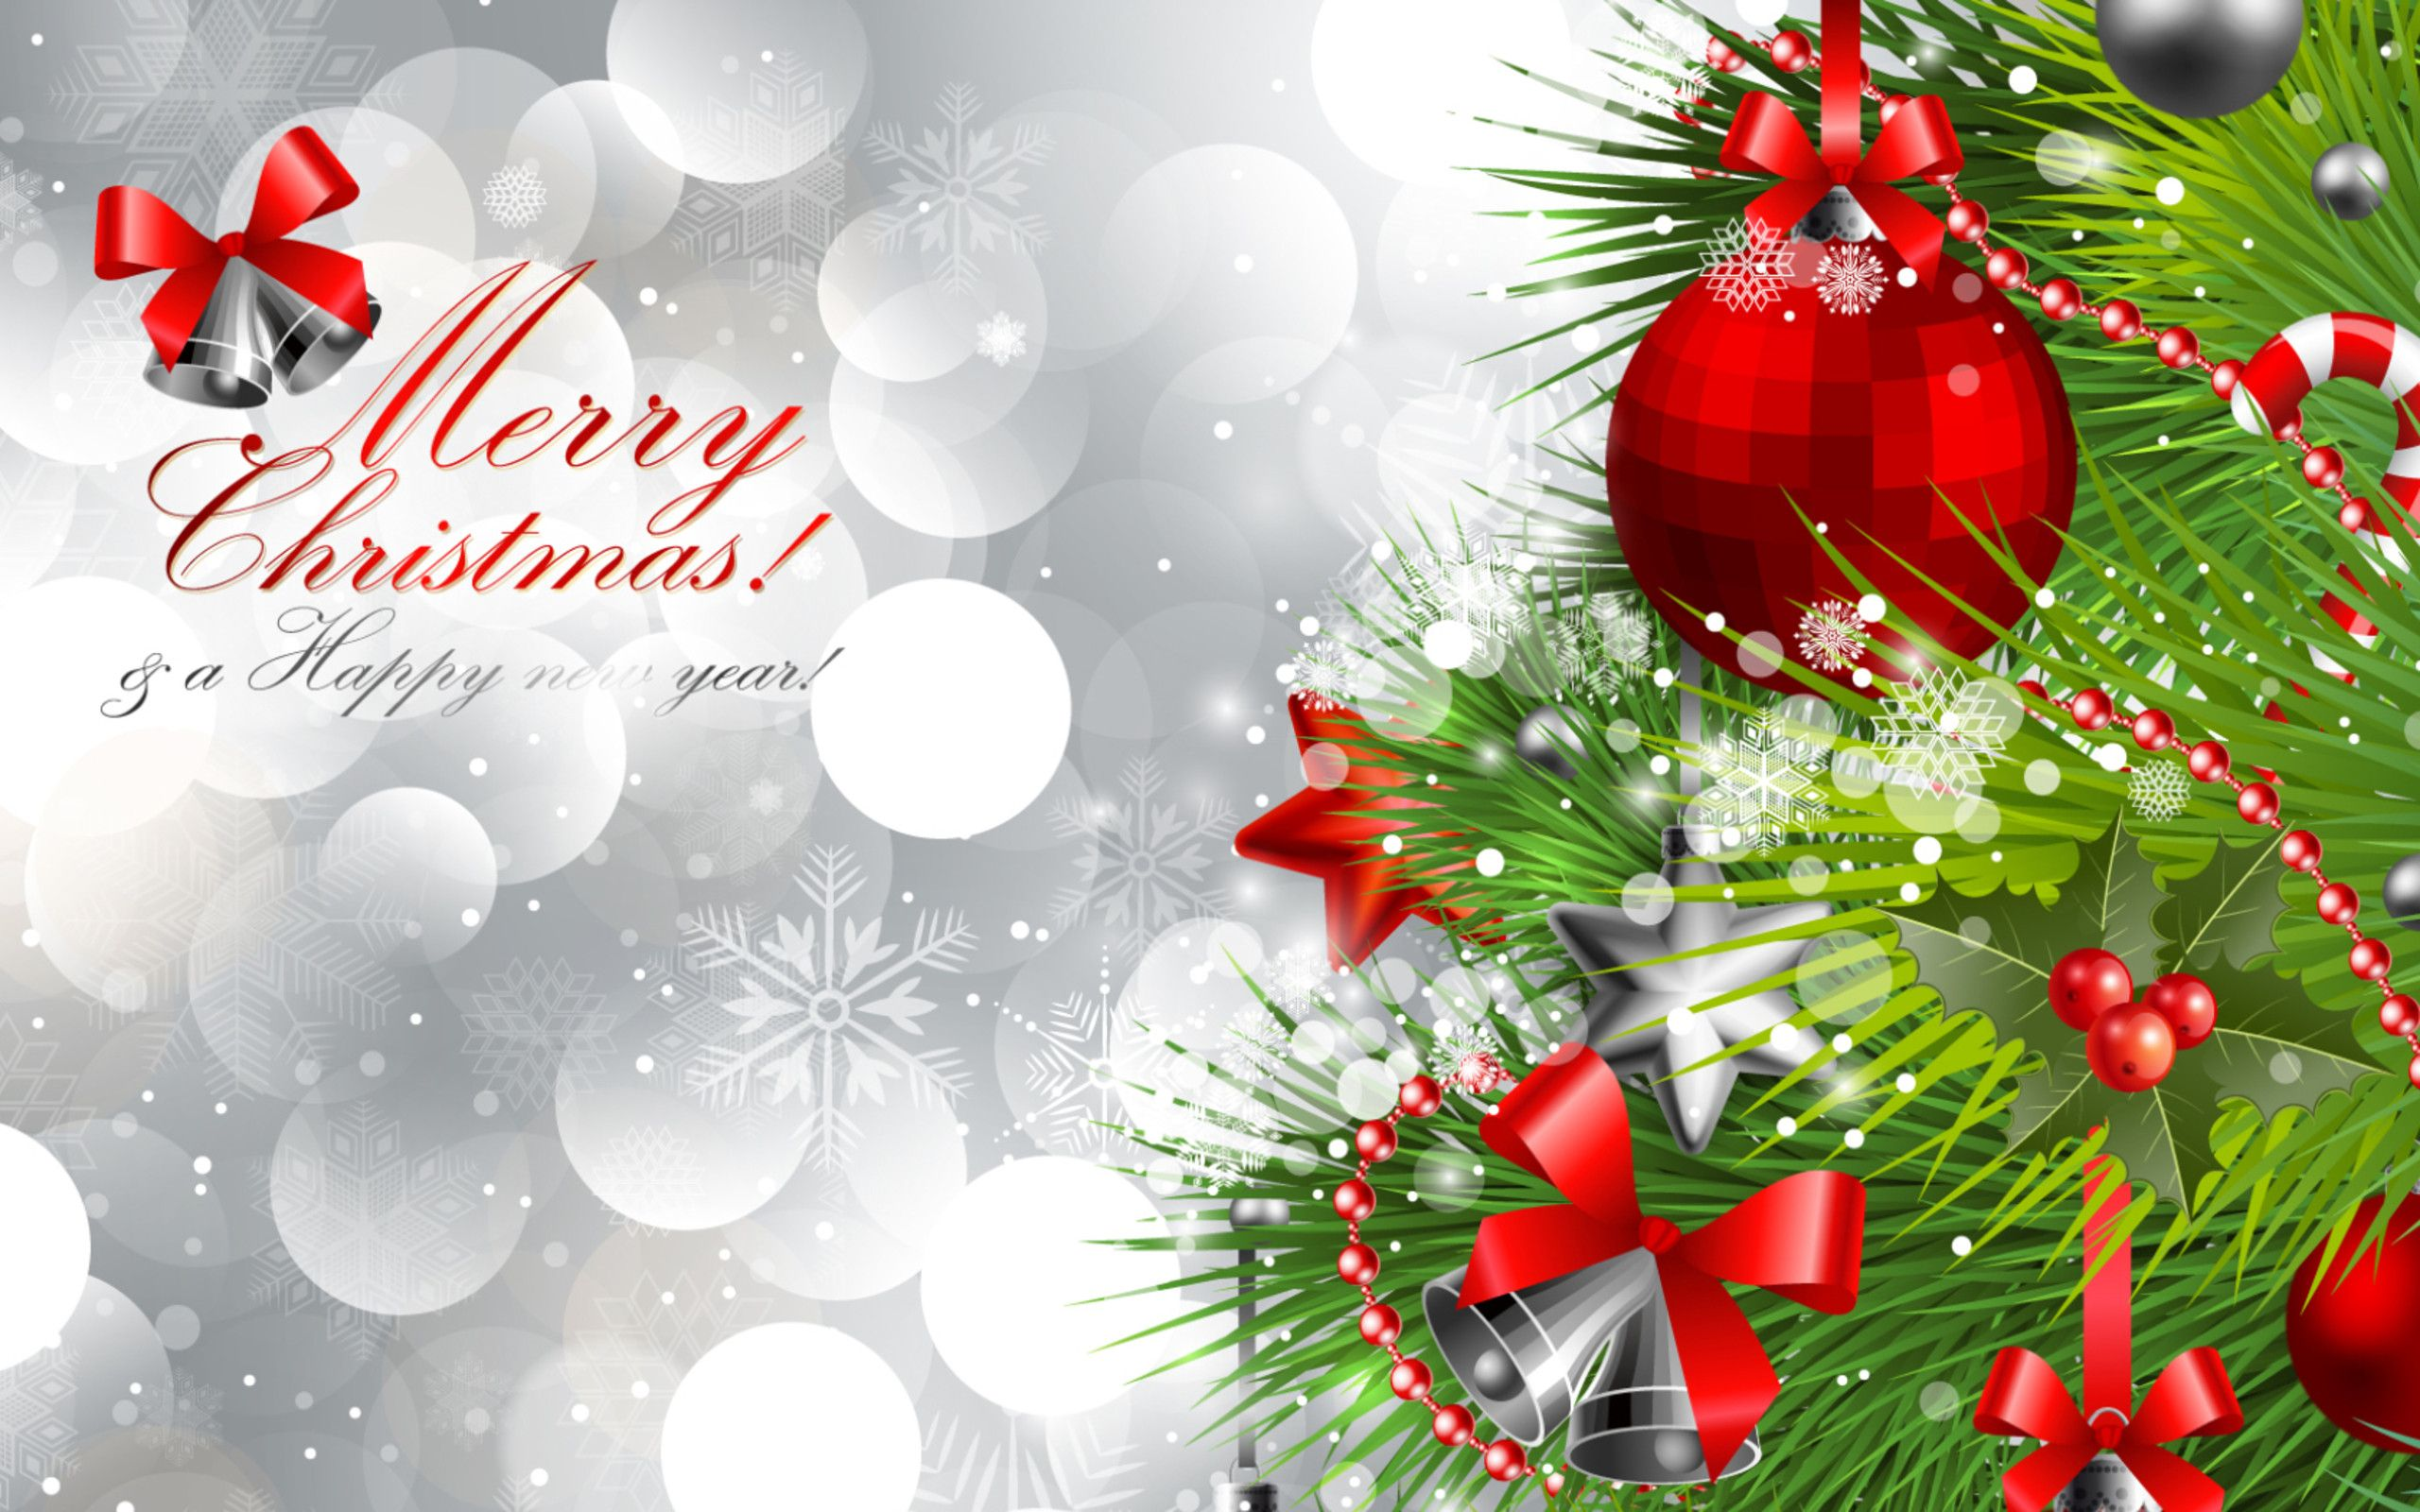 happy new year merry christmas wallpapers | adorable wallpapers